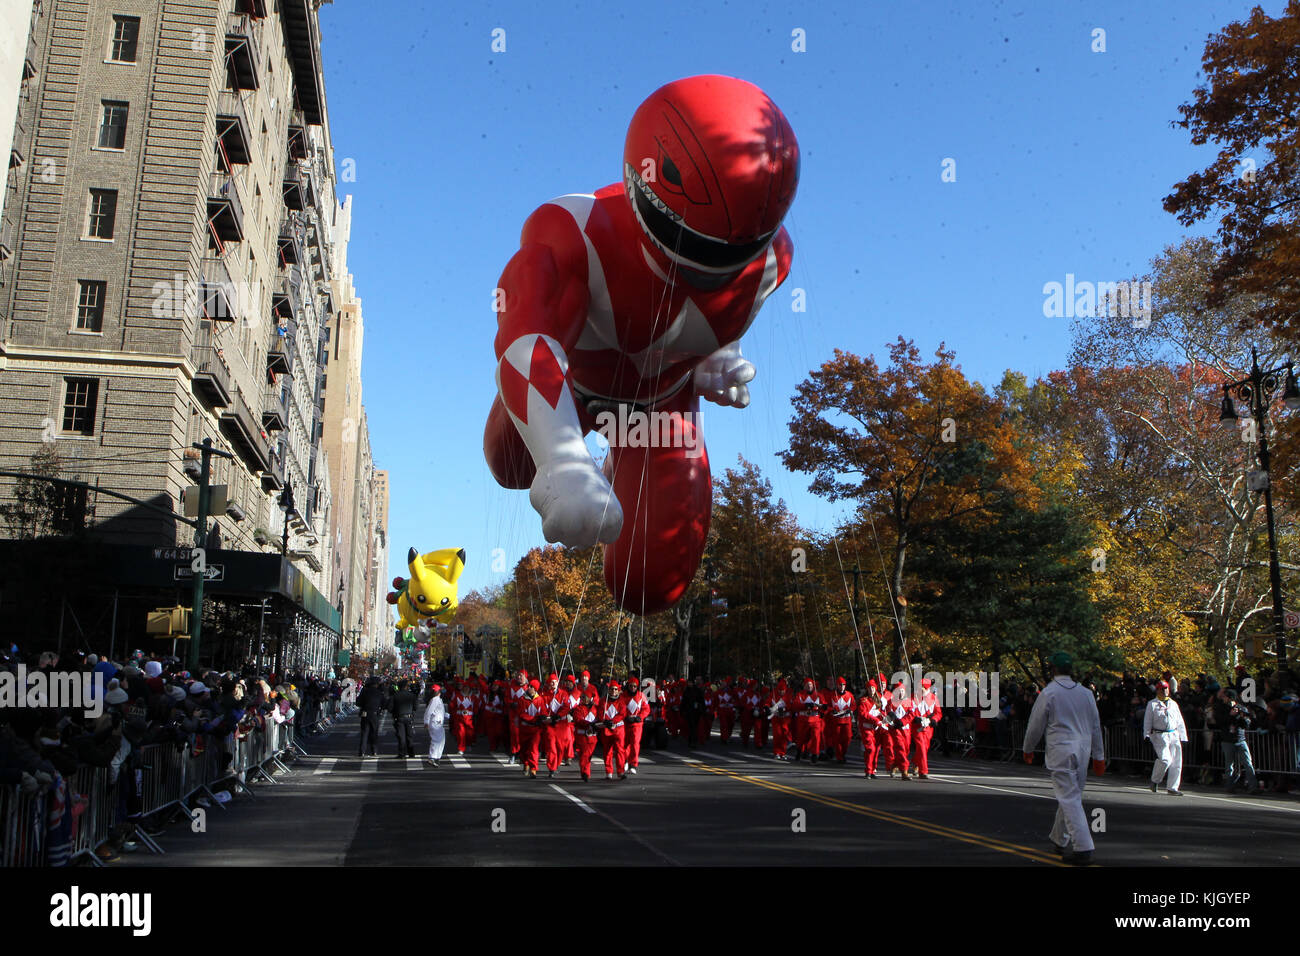 New York, NY, USA. 23rd Nov, 2017. Red Mighty Morphin Power Ranger Ballon attends the 91st Annual Macy's Thanksgiving - Stock Image